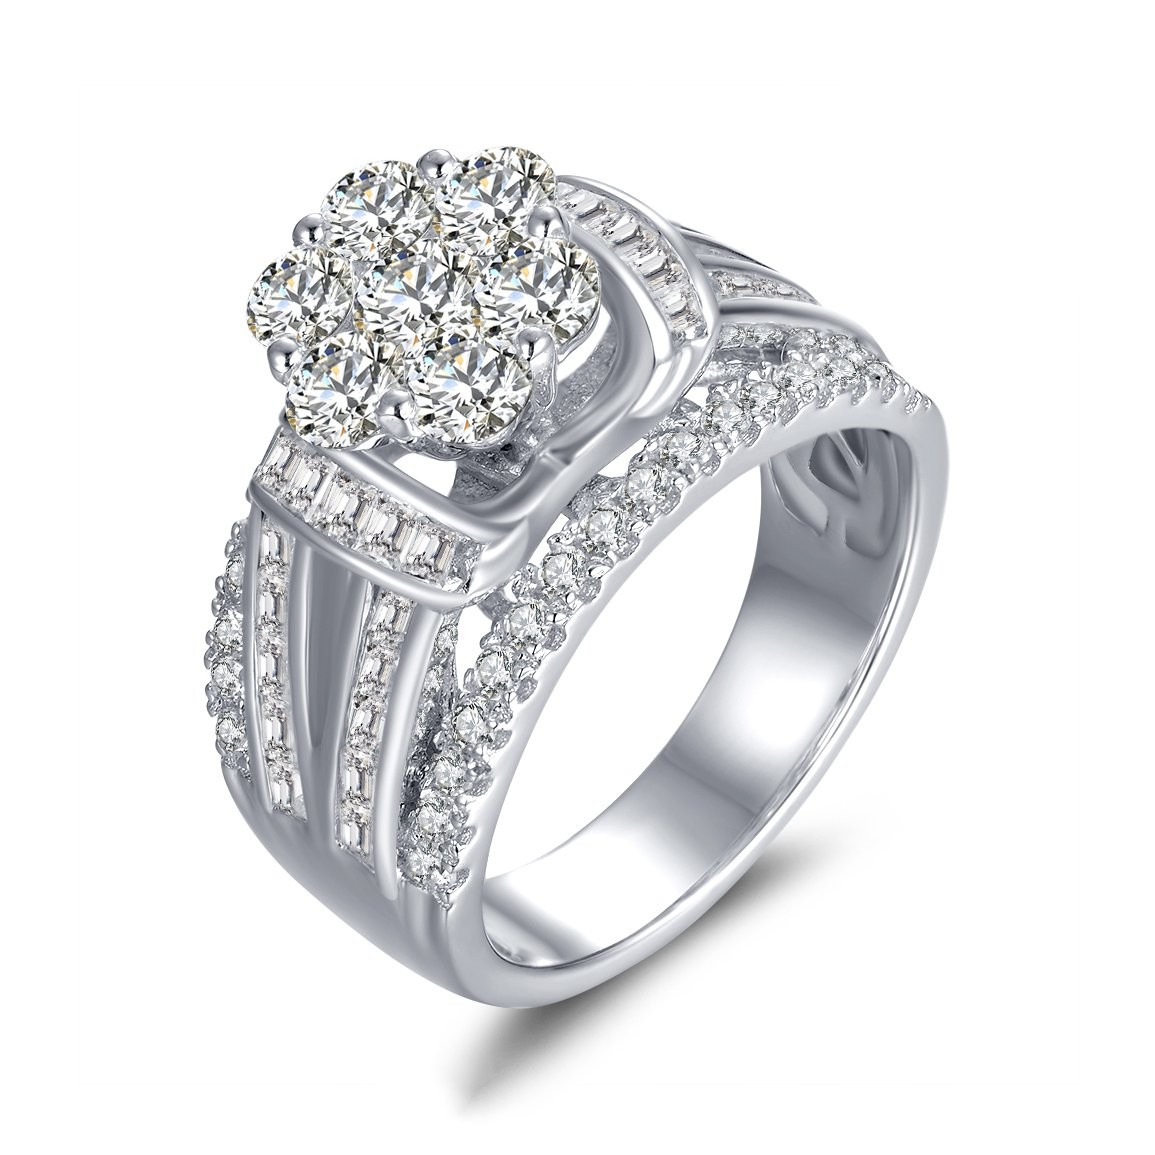 rings t jsp tw carat engagement diamond product plated hei rhodium bypass wid silver prd op stone w sterling sharpen ring